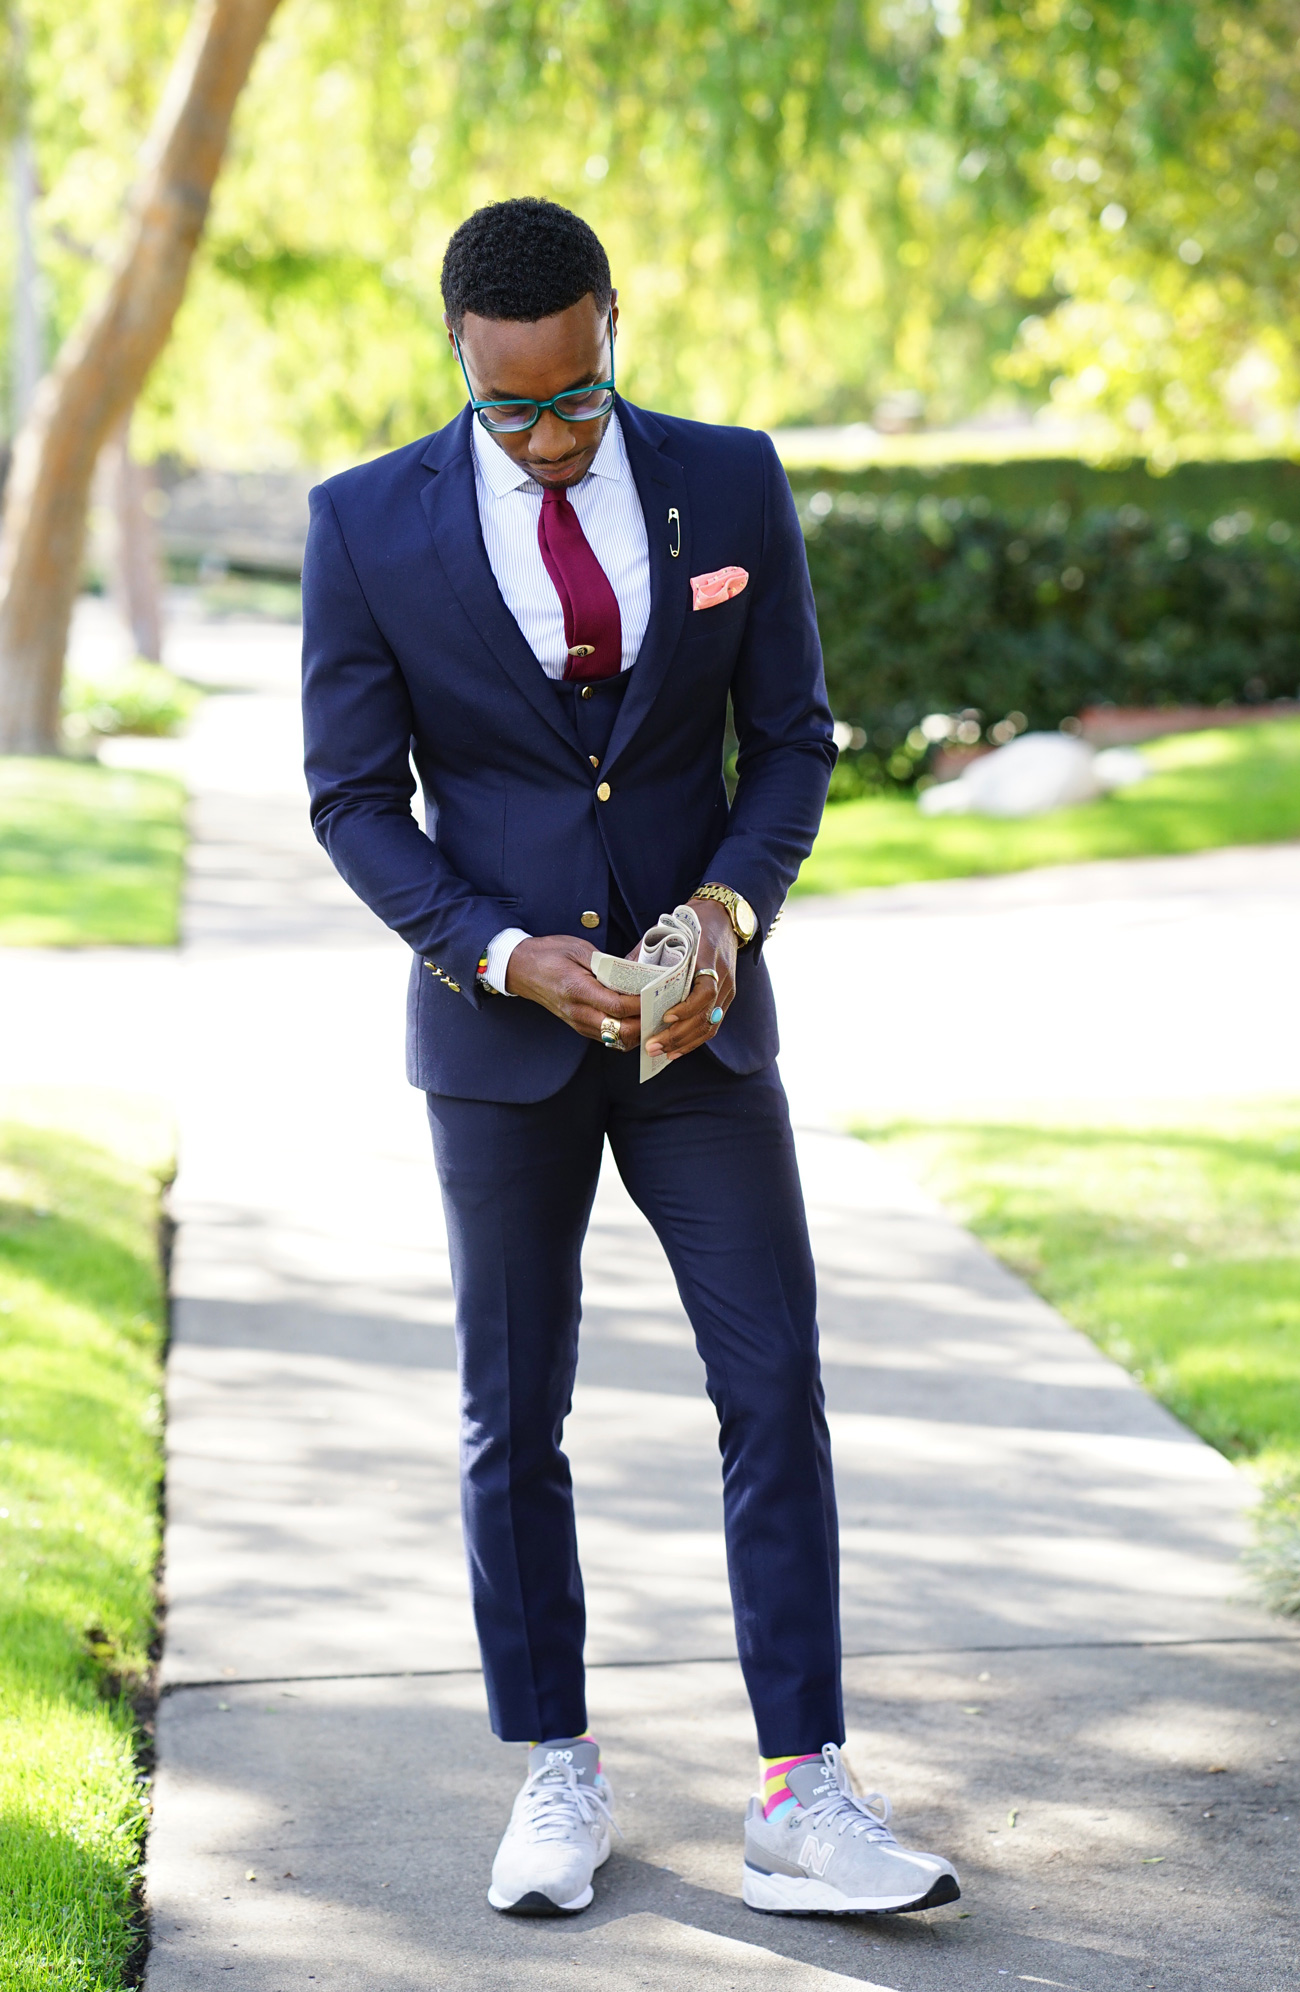 BUSINESS SUIT STYLED WITH NEW BALANCE